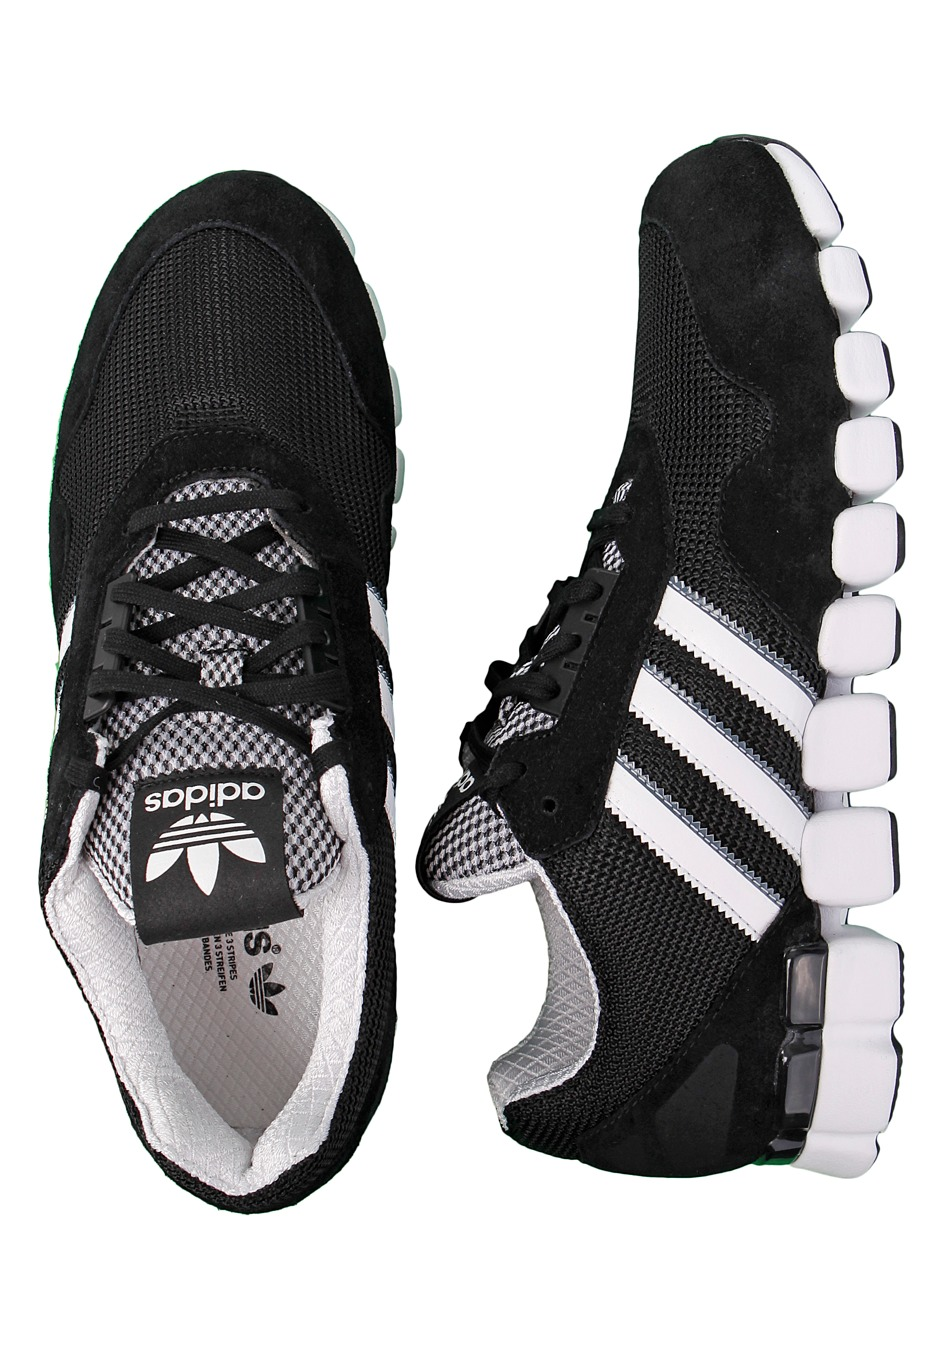 dcdecfc6514ea3 Adidas - Mega Torsion Flex Easy Black White - Shoes - Impericon.com  Worldwide